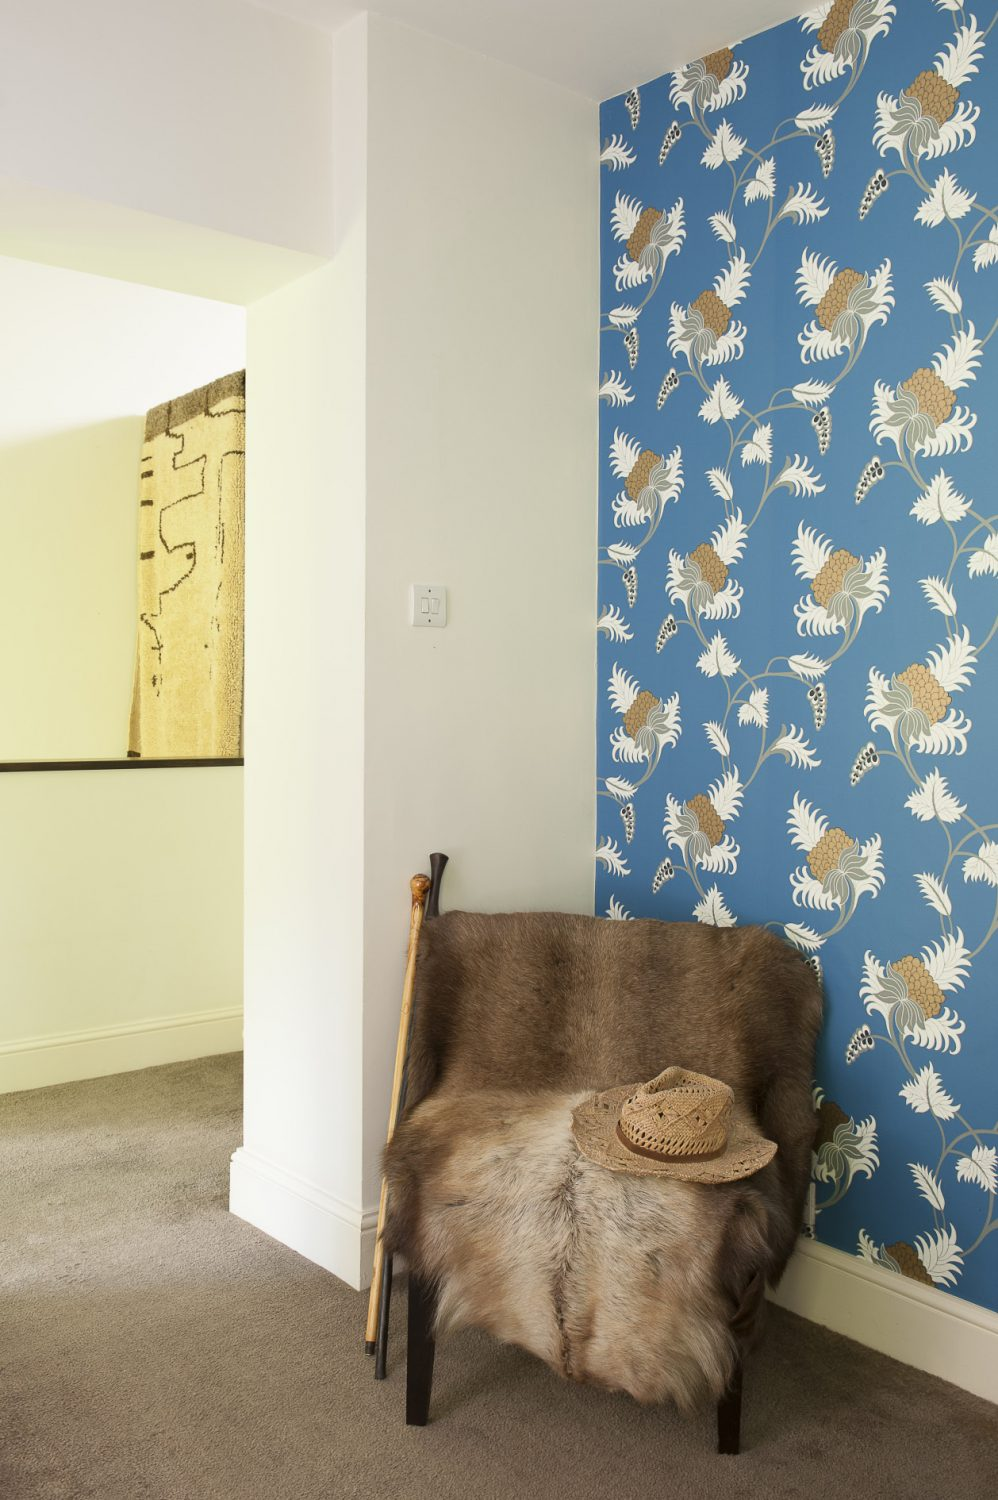 A reindeer hide thrown over a chair creates a dramatic corner on the upstairs landing. The bold pineapple print wallpaper is Neisha Crosland